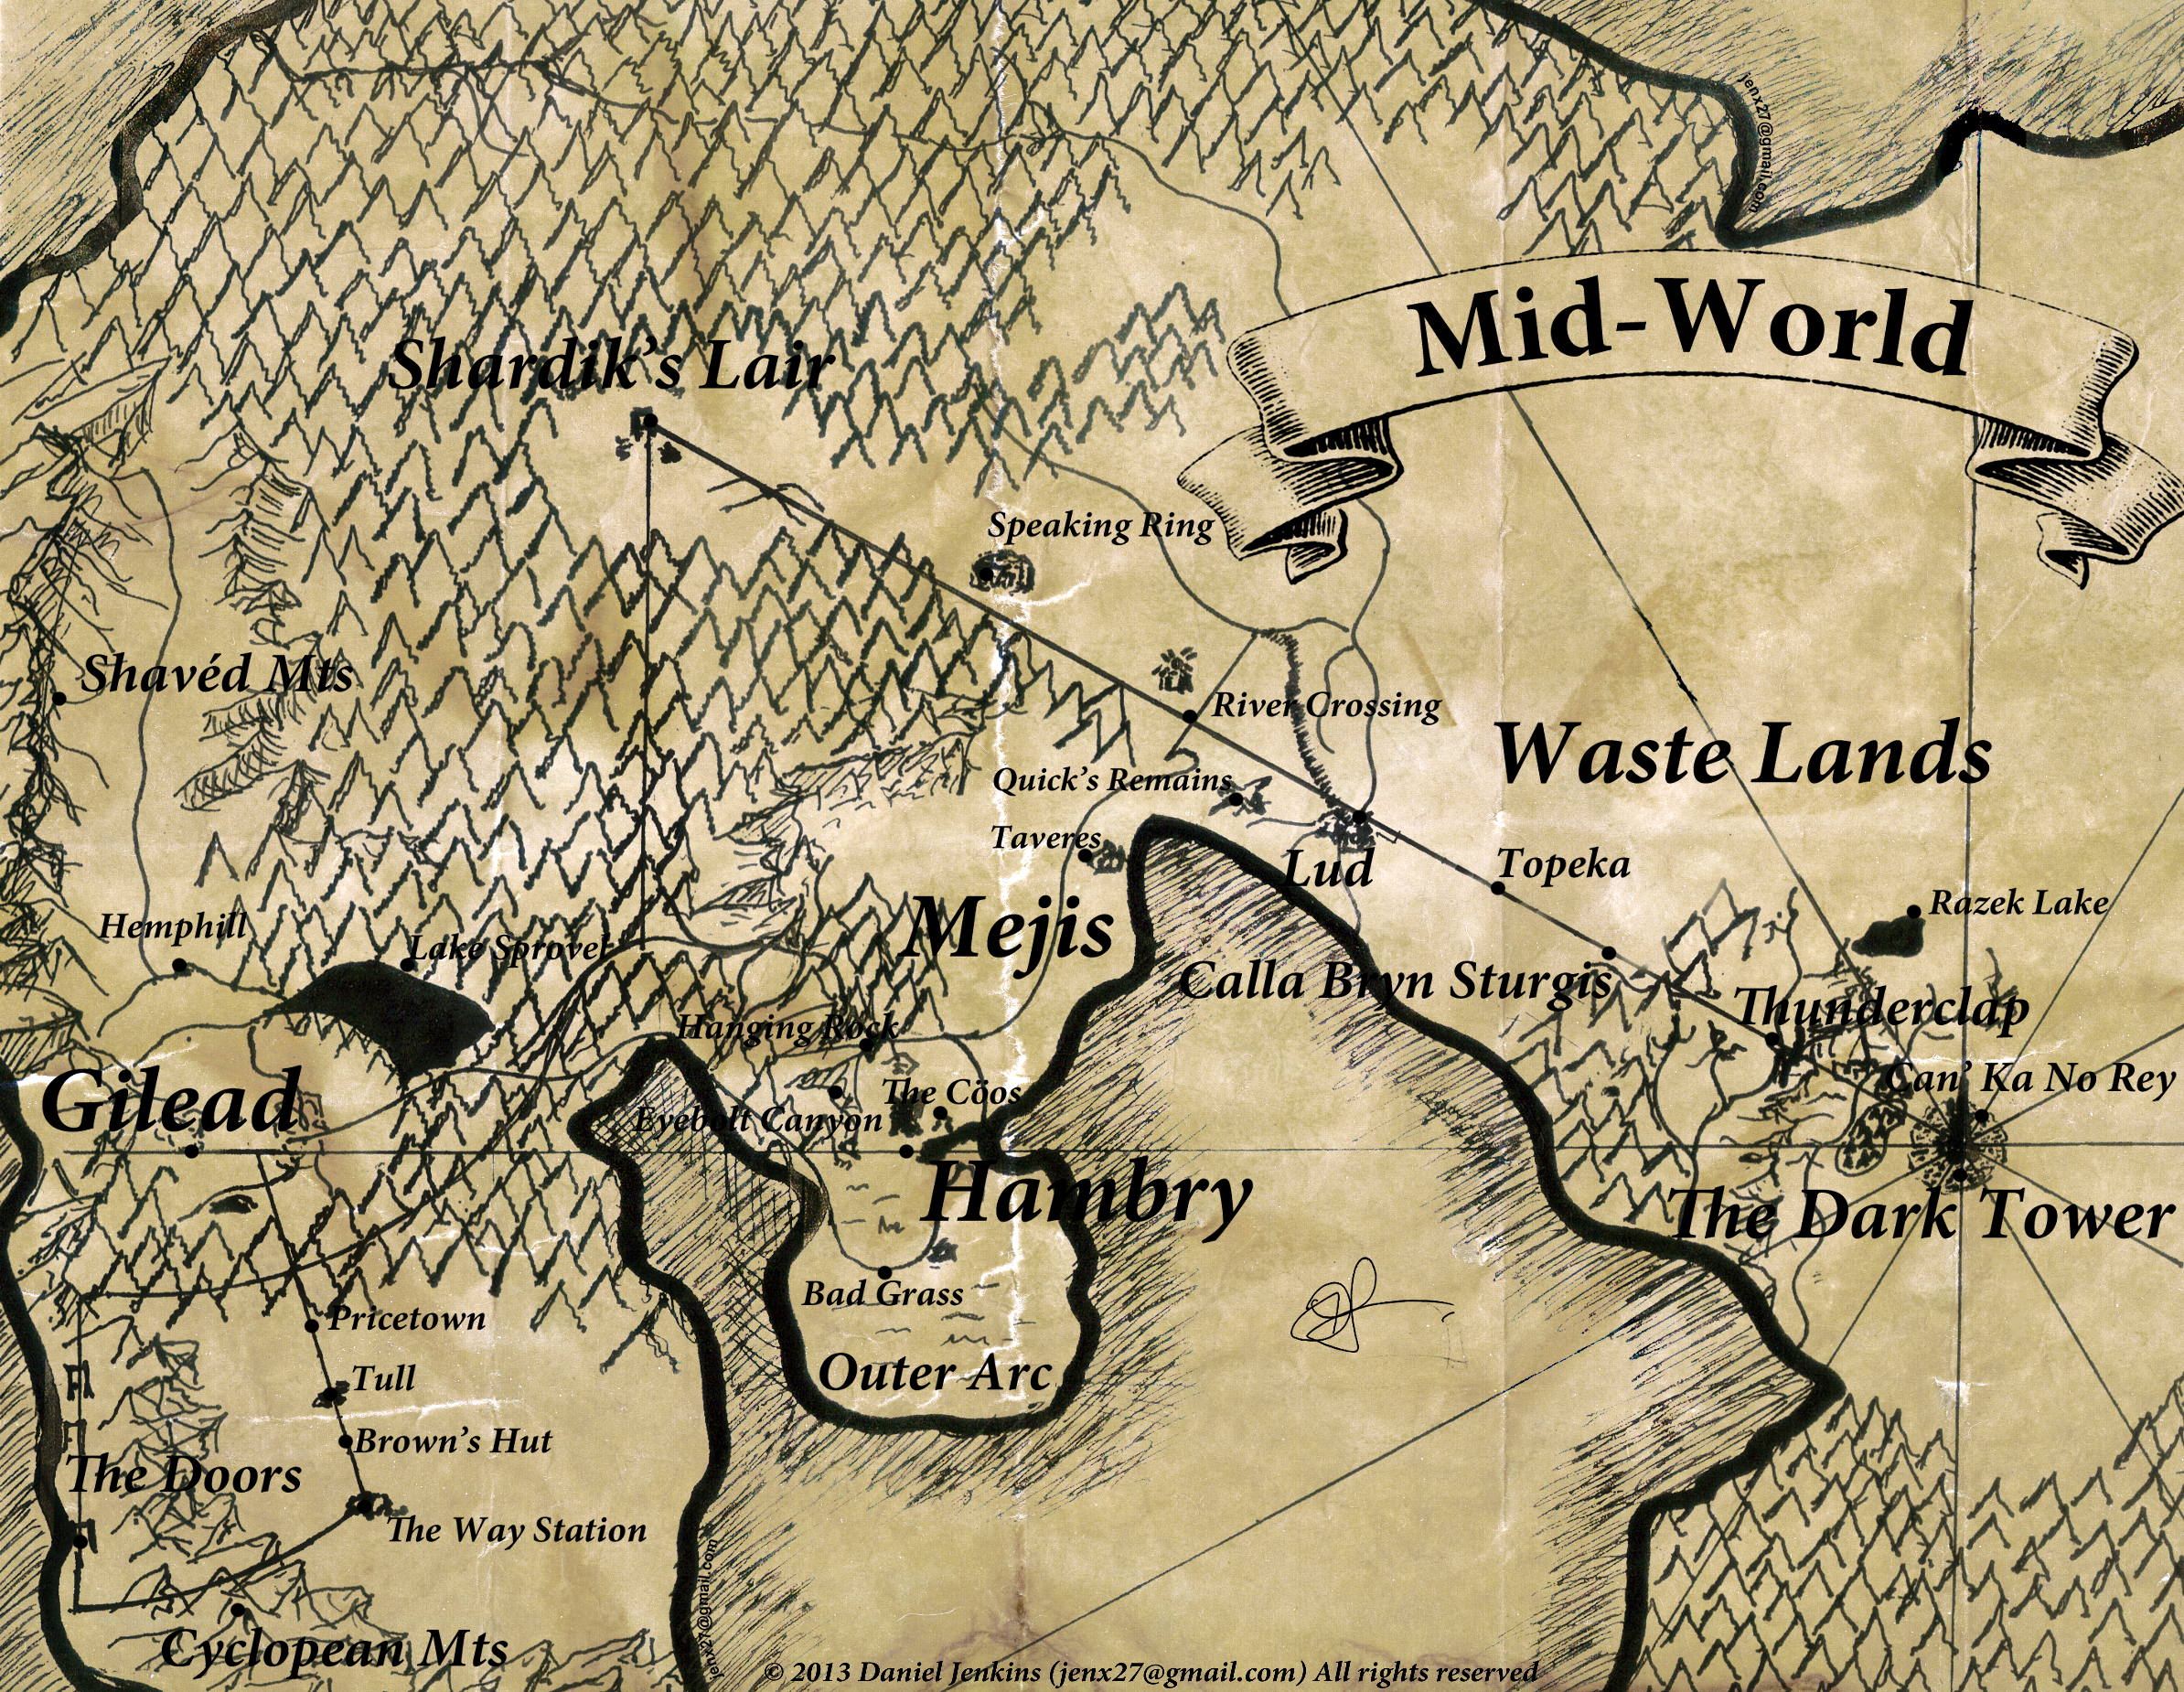 Where the maps came from? | The Dark Tower Wiki | FANDOM powered by ...